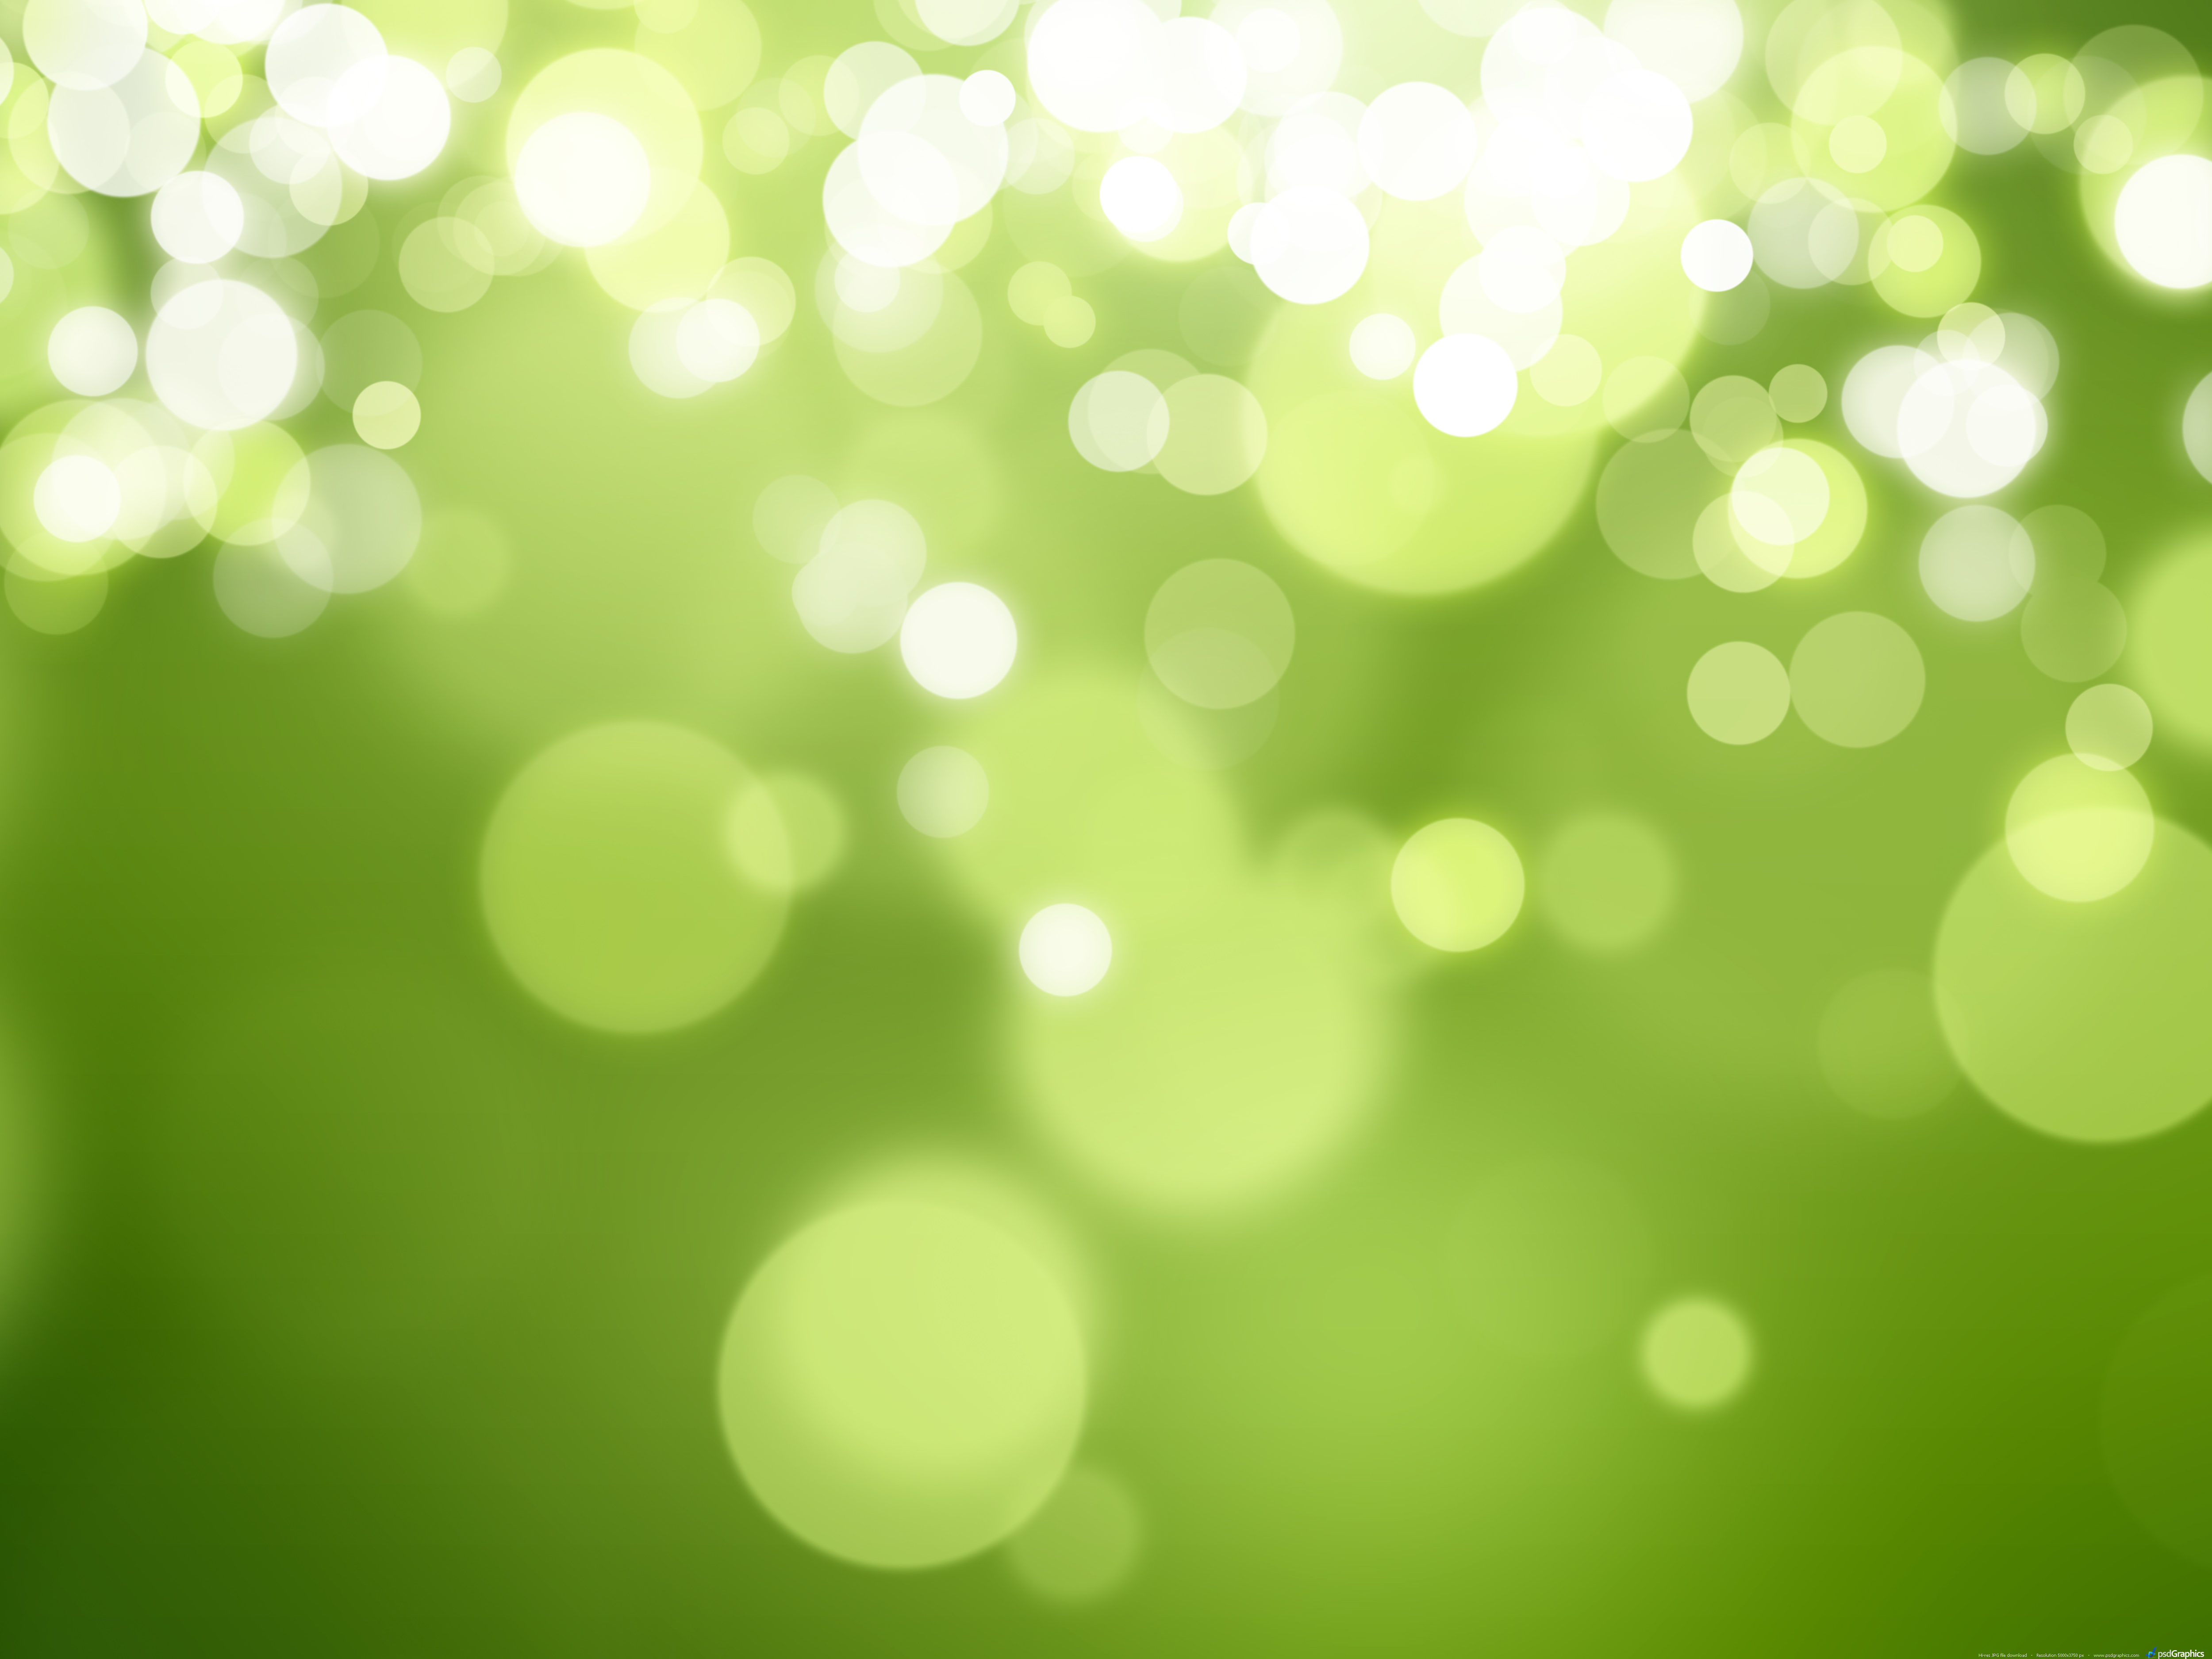 green design blurry lights background eco friendly green background 5000x3750